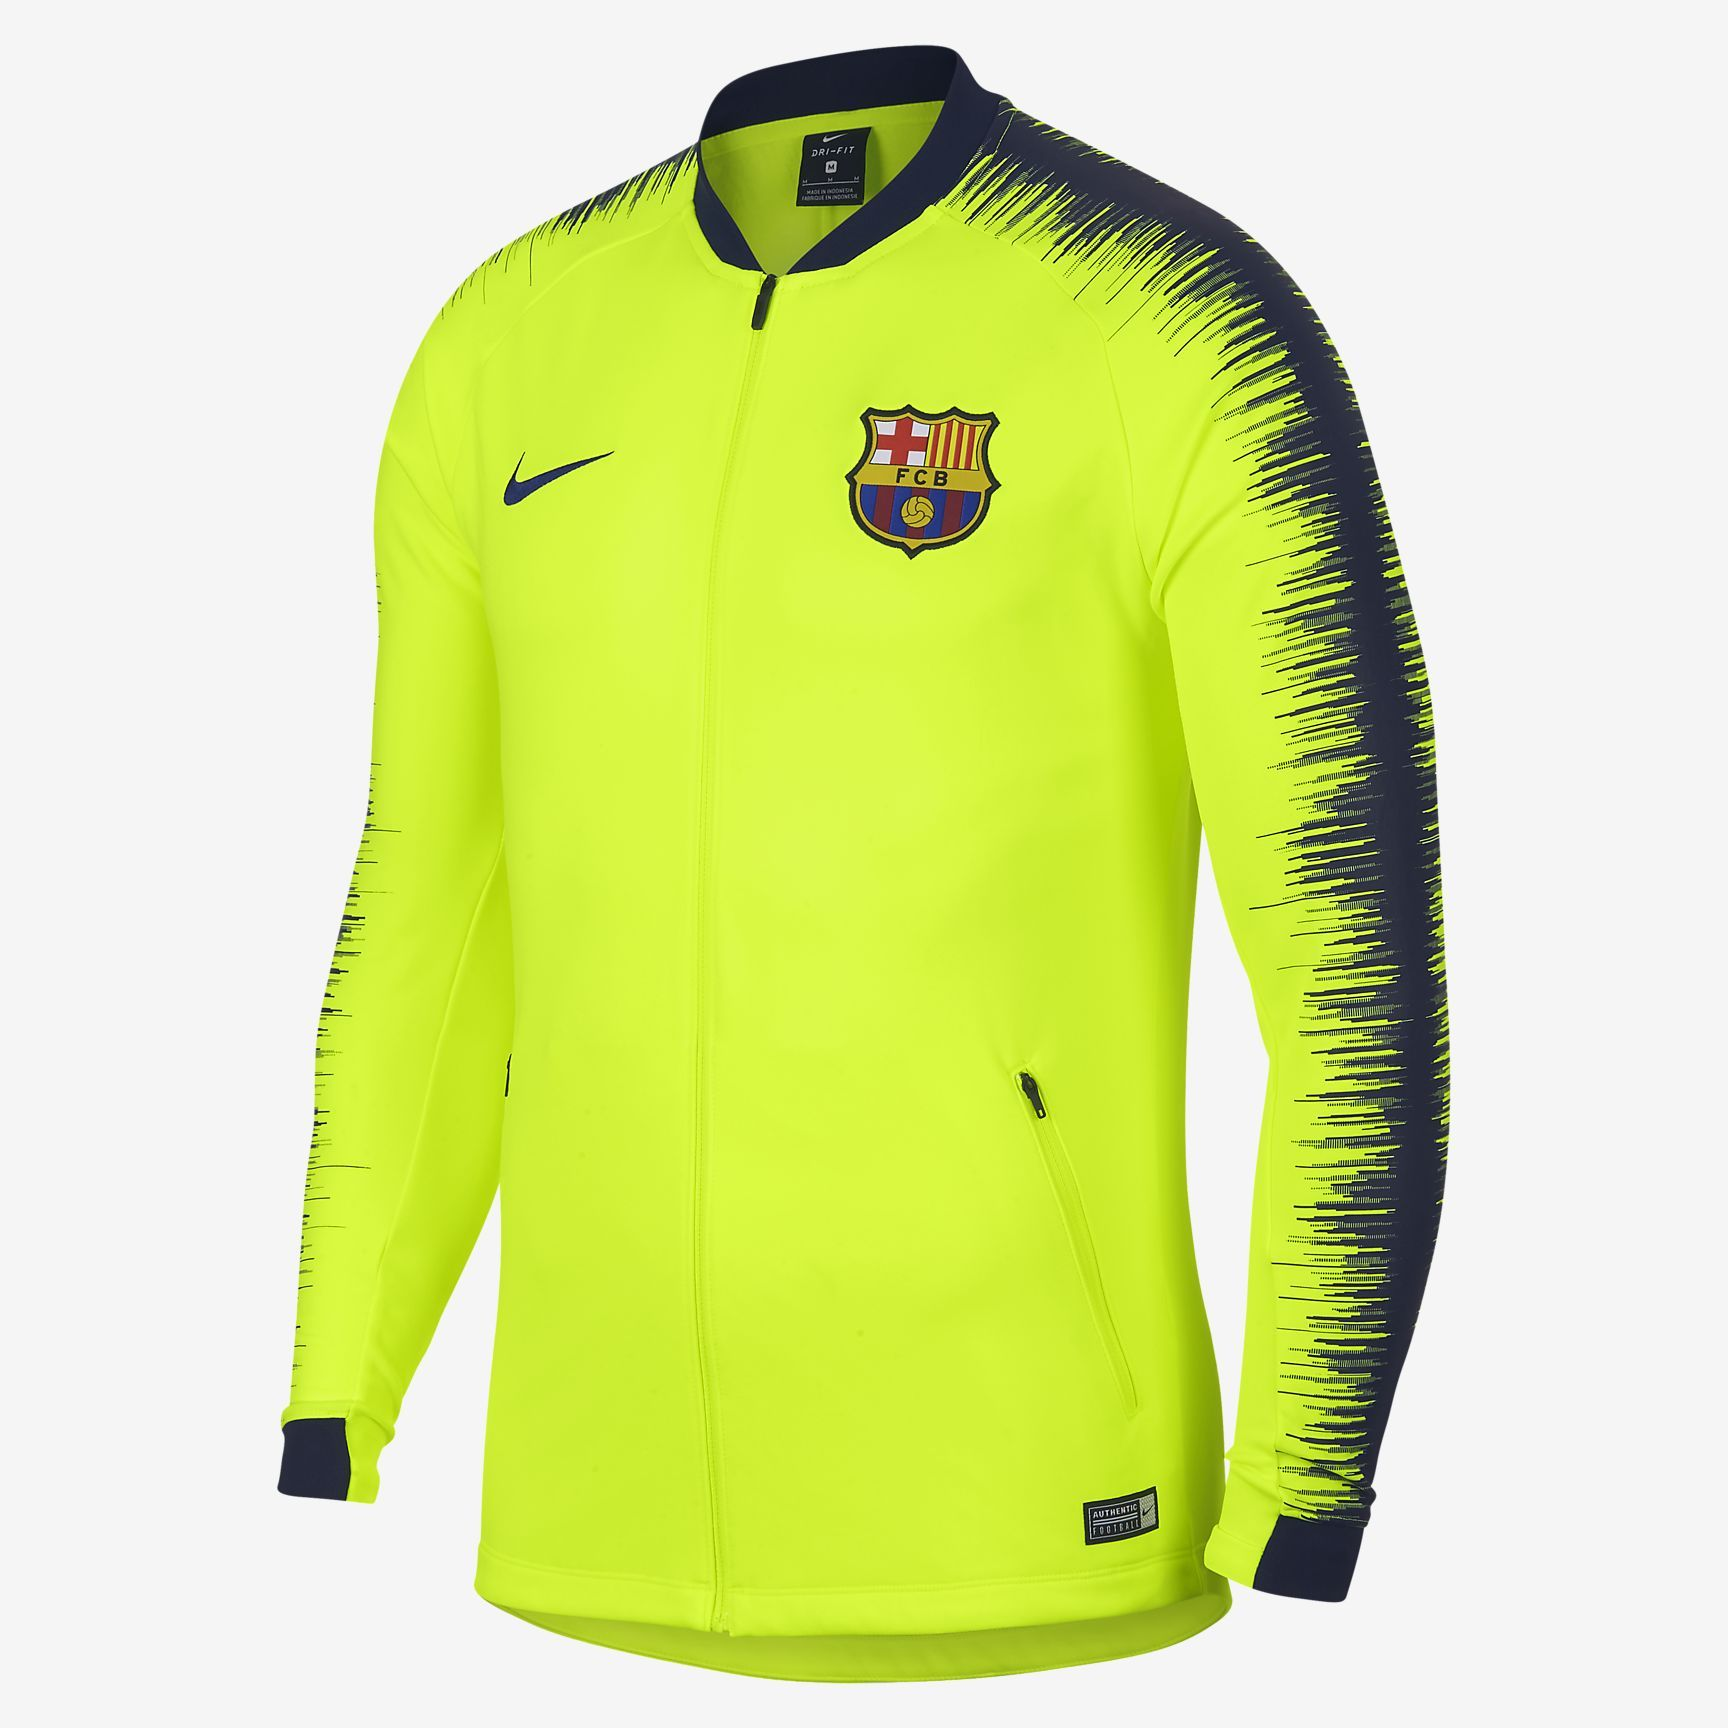 cde7e595aef NIKE FC BARCELONA ANTHEM JACKET 2018/19 Volt/Obsidian | Products ...